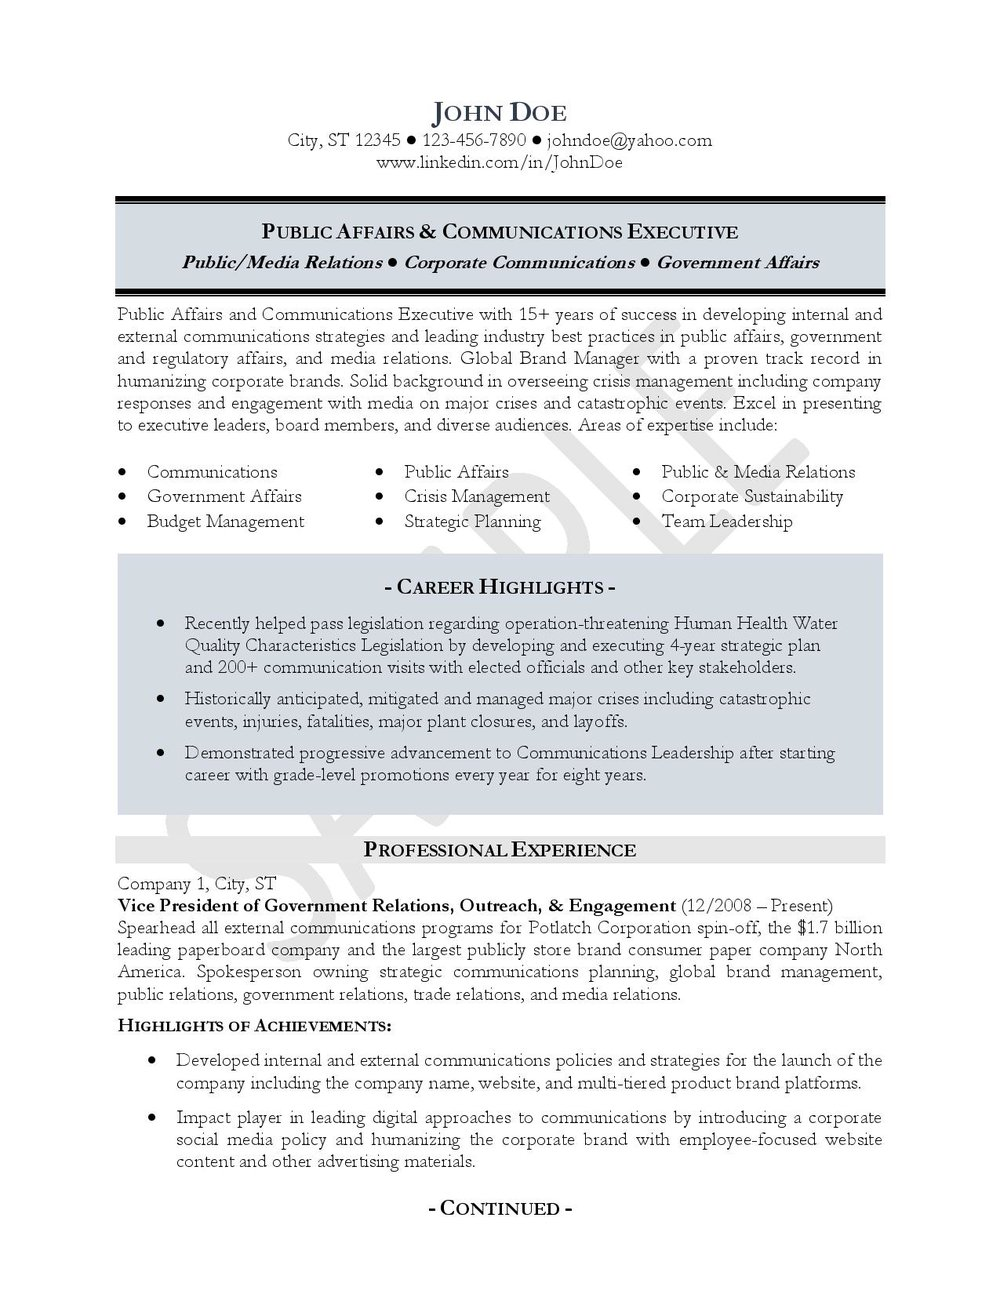 Public Affairs & Communications Executive Resume